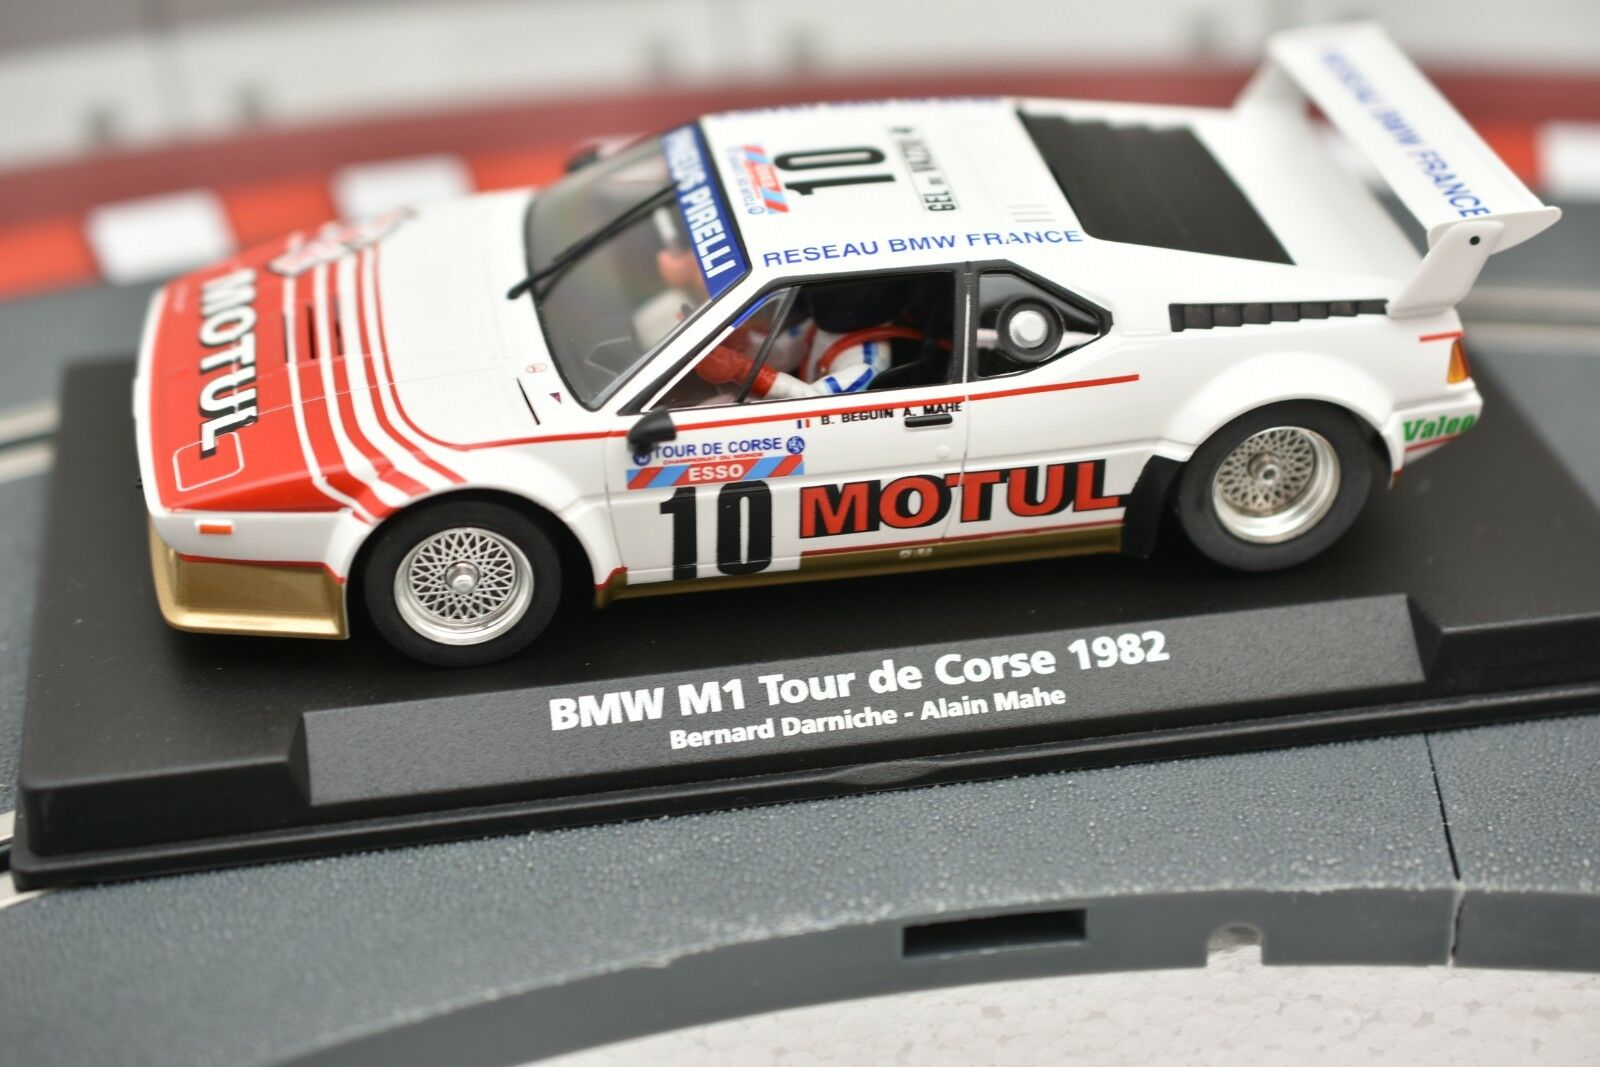 88180 FLY CAR 1 32 CAR MODEL BMW M1 TOUR DE CORSE 1982 DARNICHE-MAHE A-1303